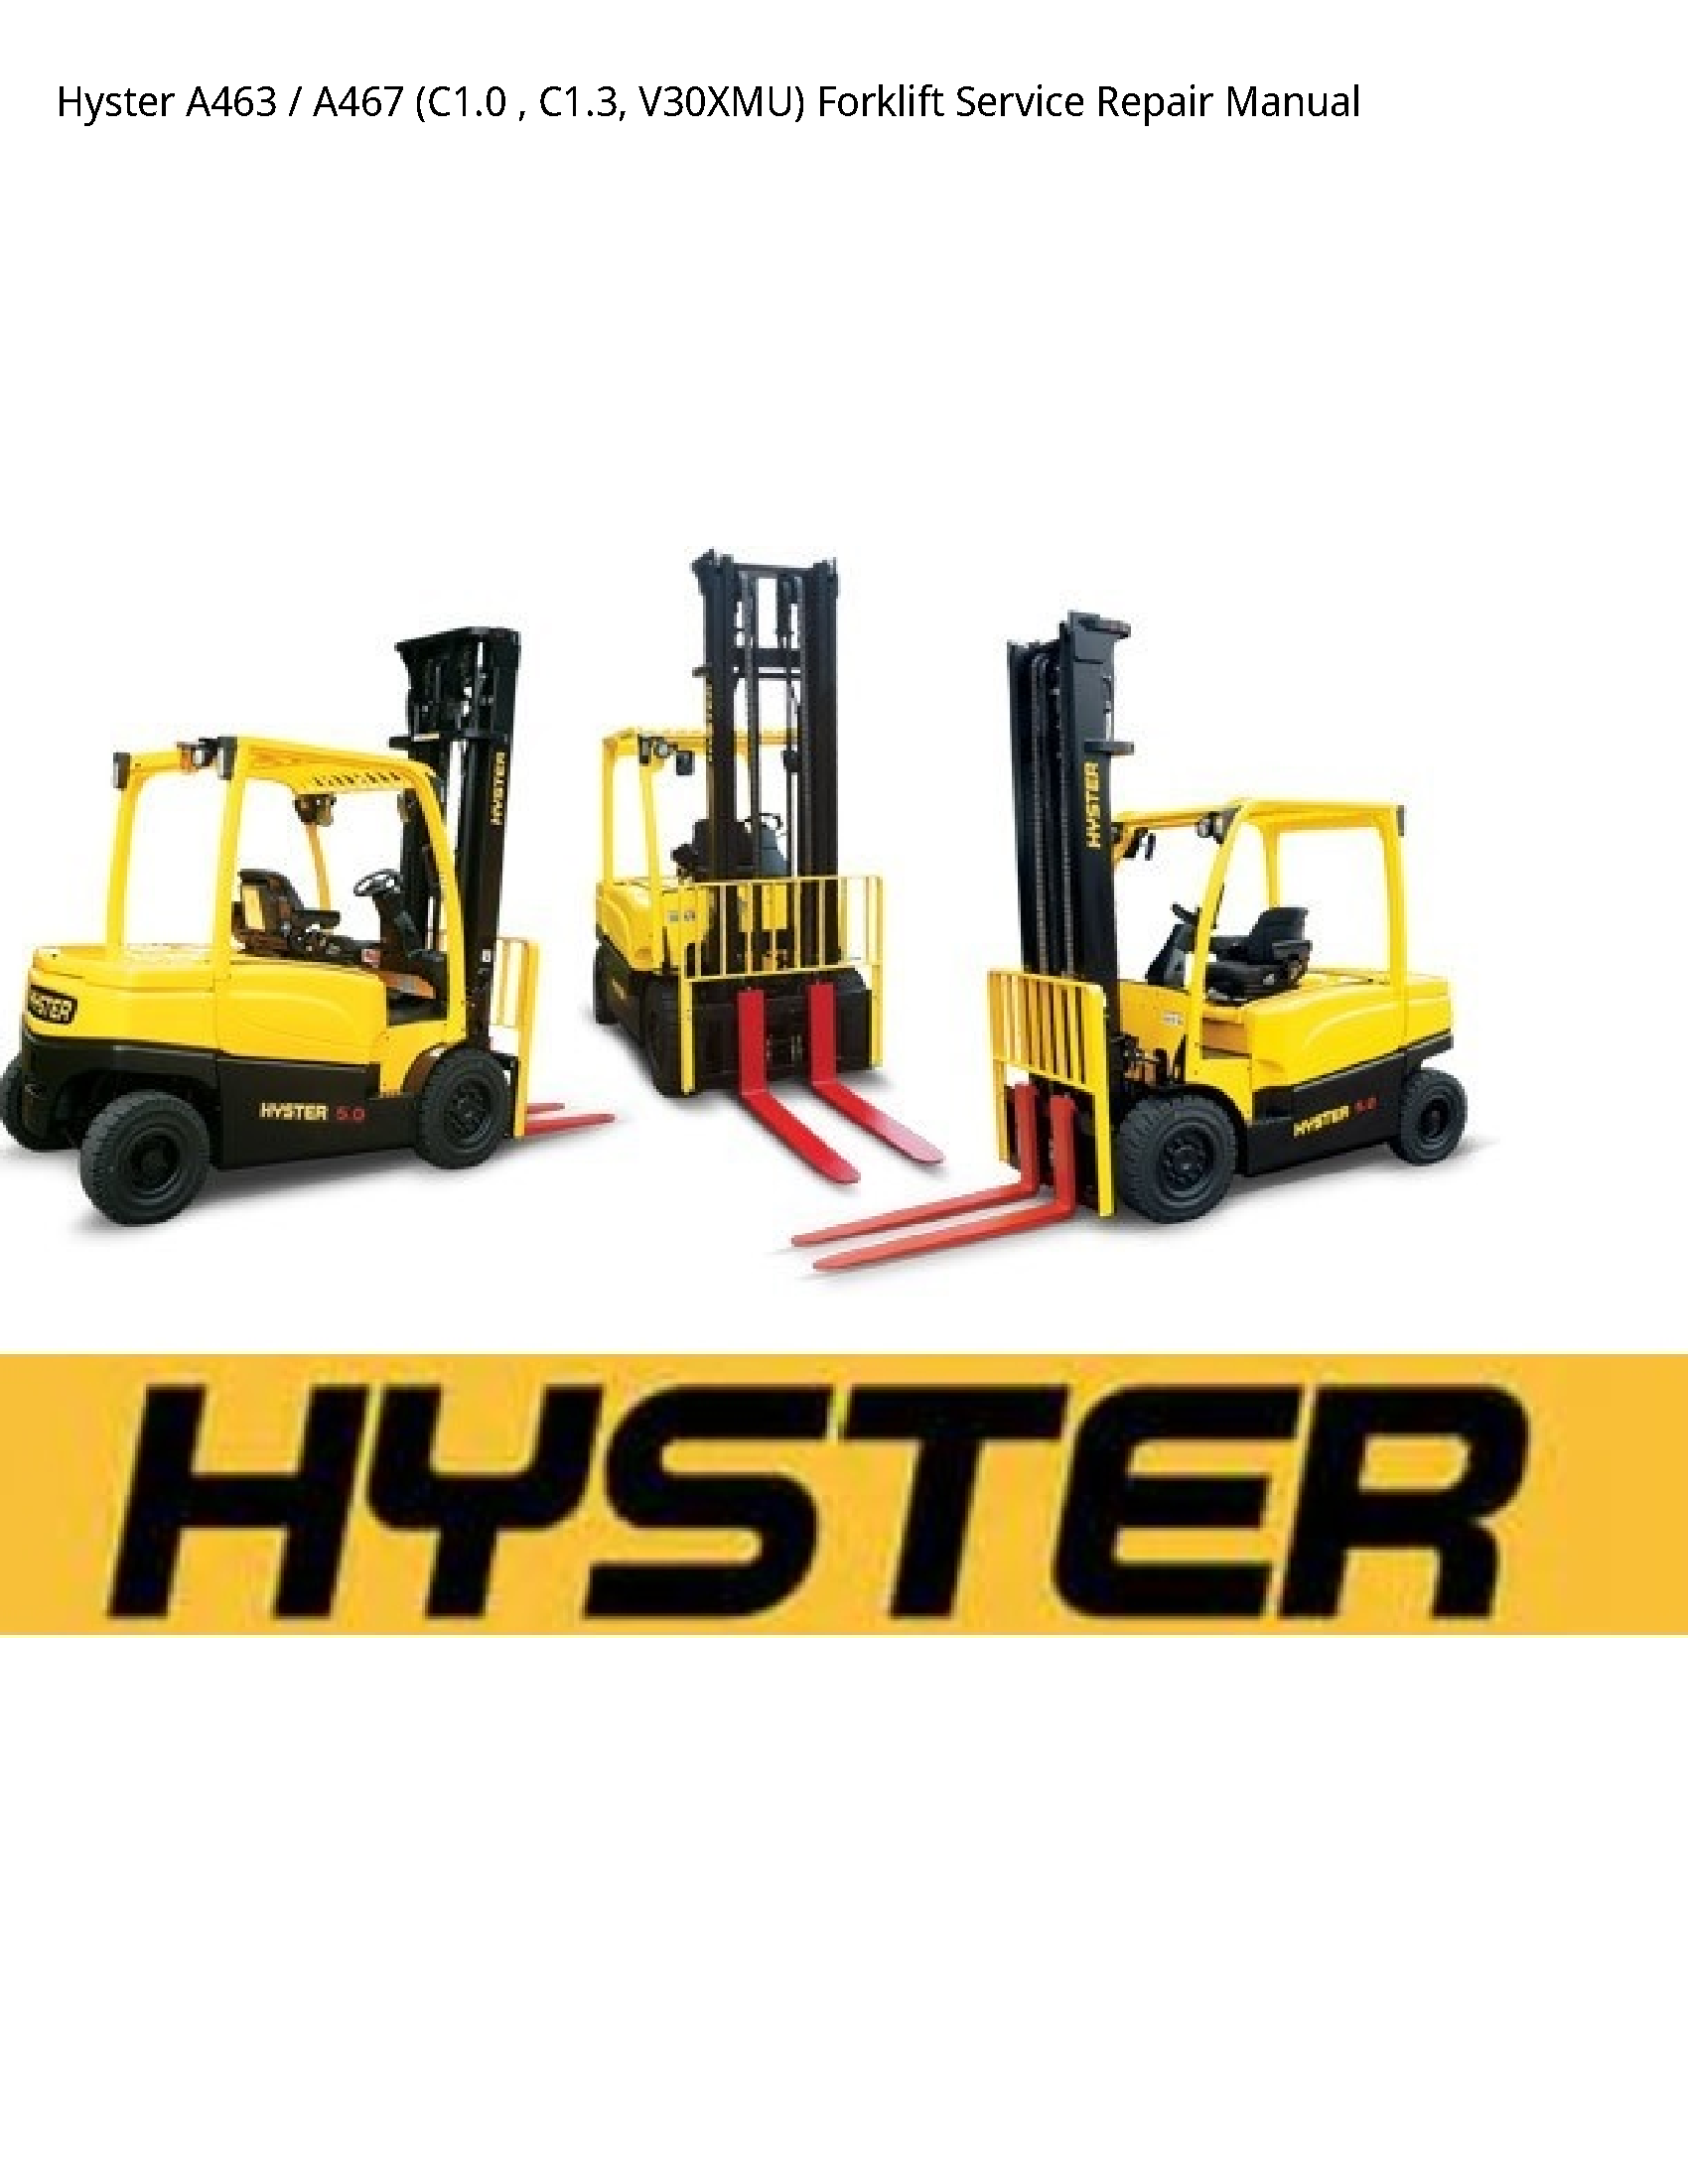 Hyster A463 Forklift manual